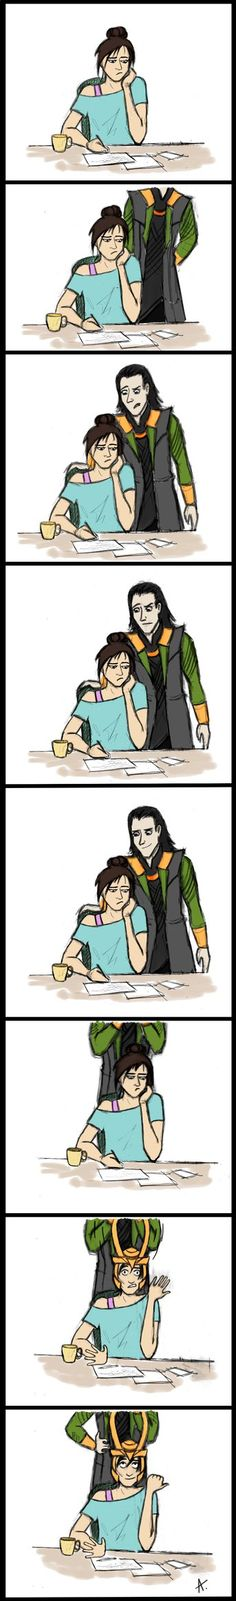 How someone can study (or write or whatever) with Loki standing behind you, I have no idea.